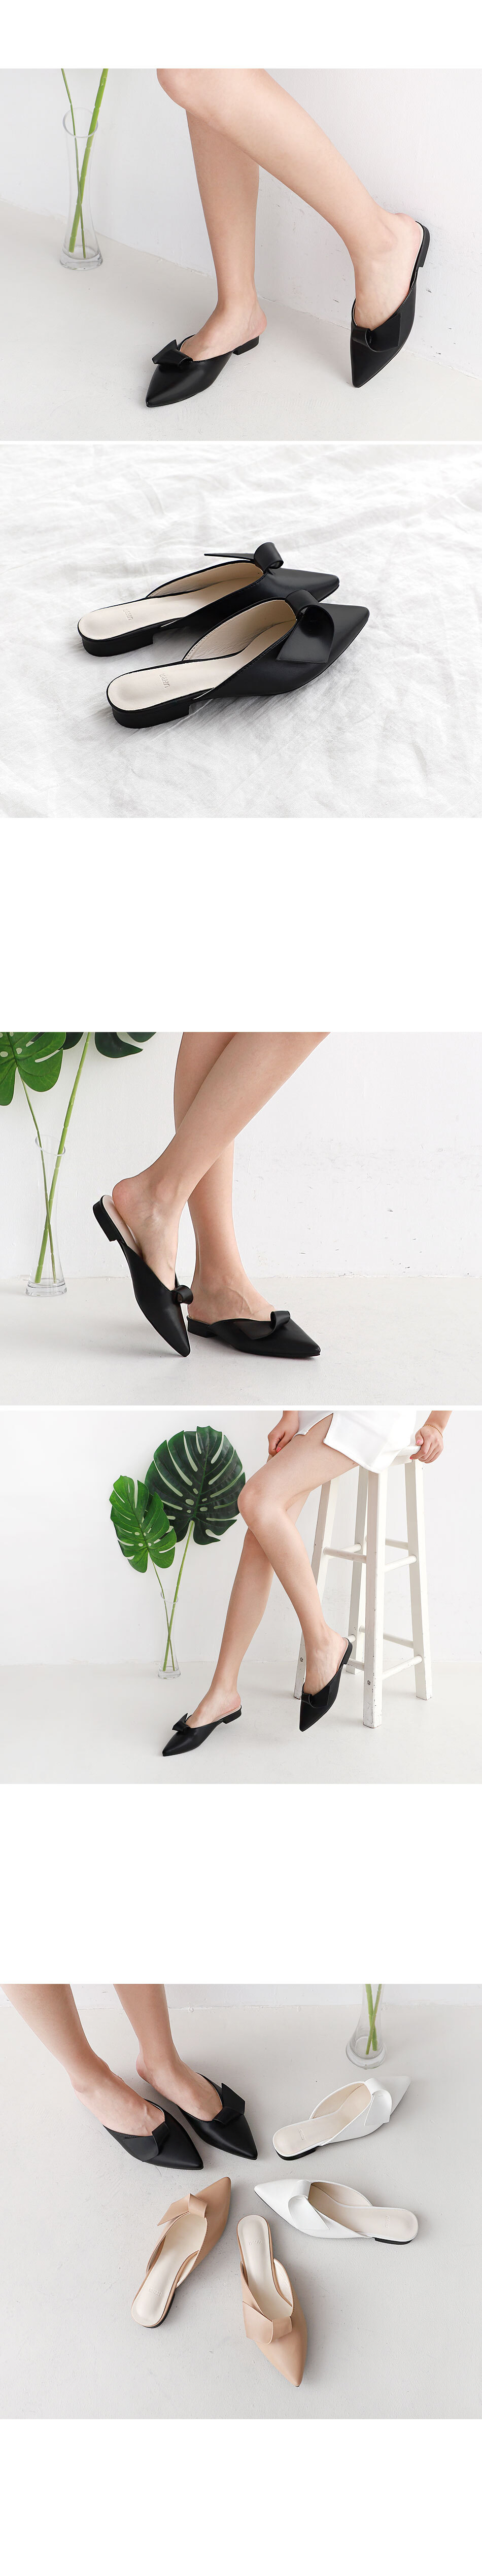 Isshu pointed nose roll-up decoration blower mule slippers 2512